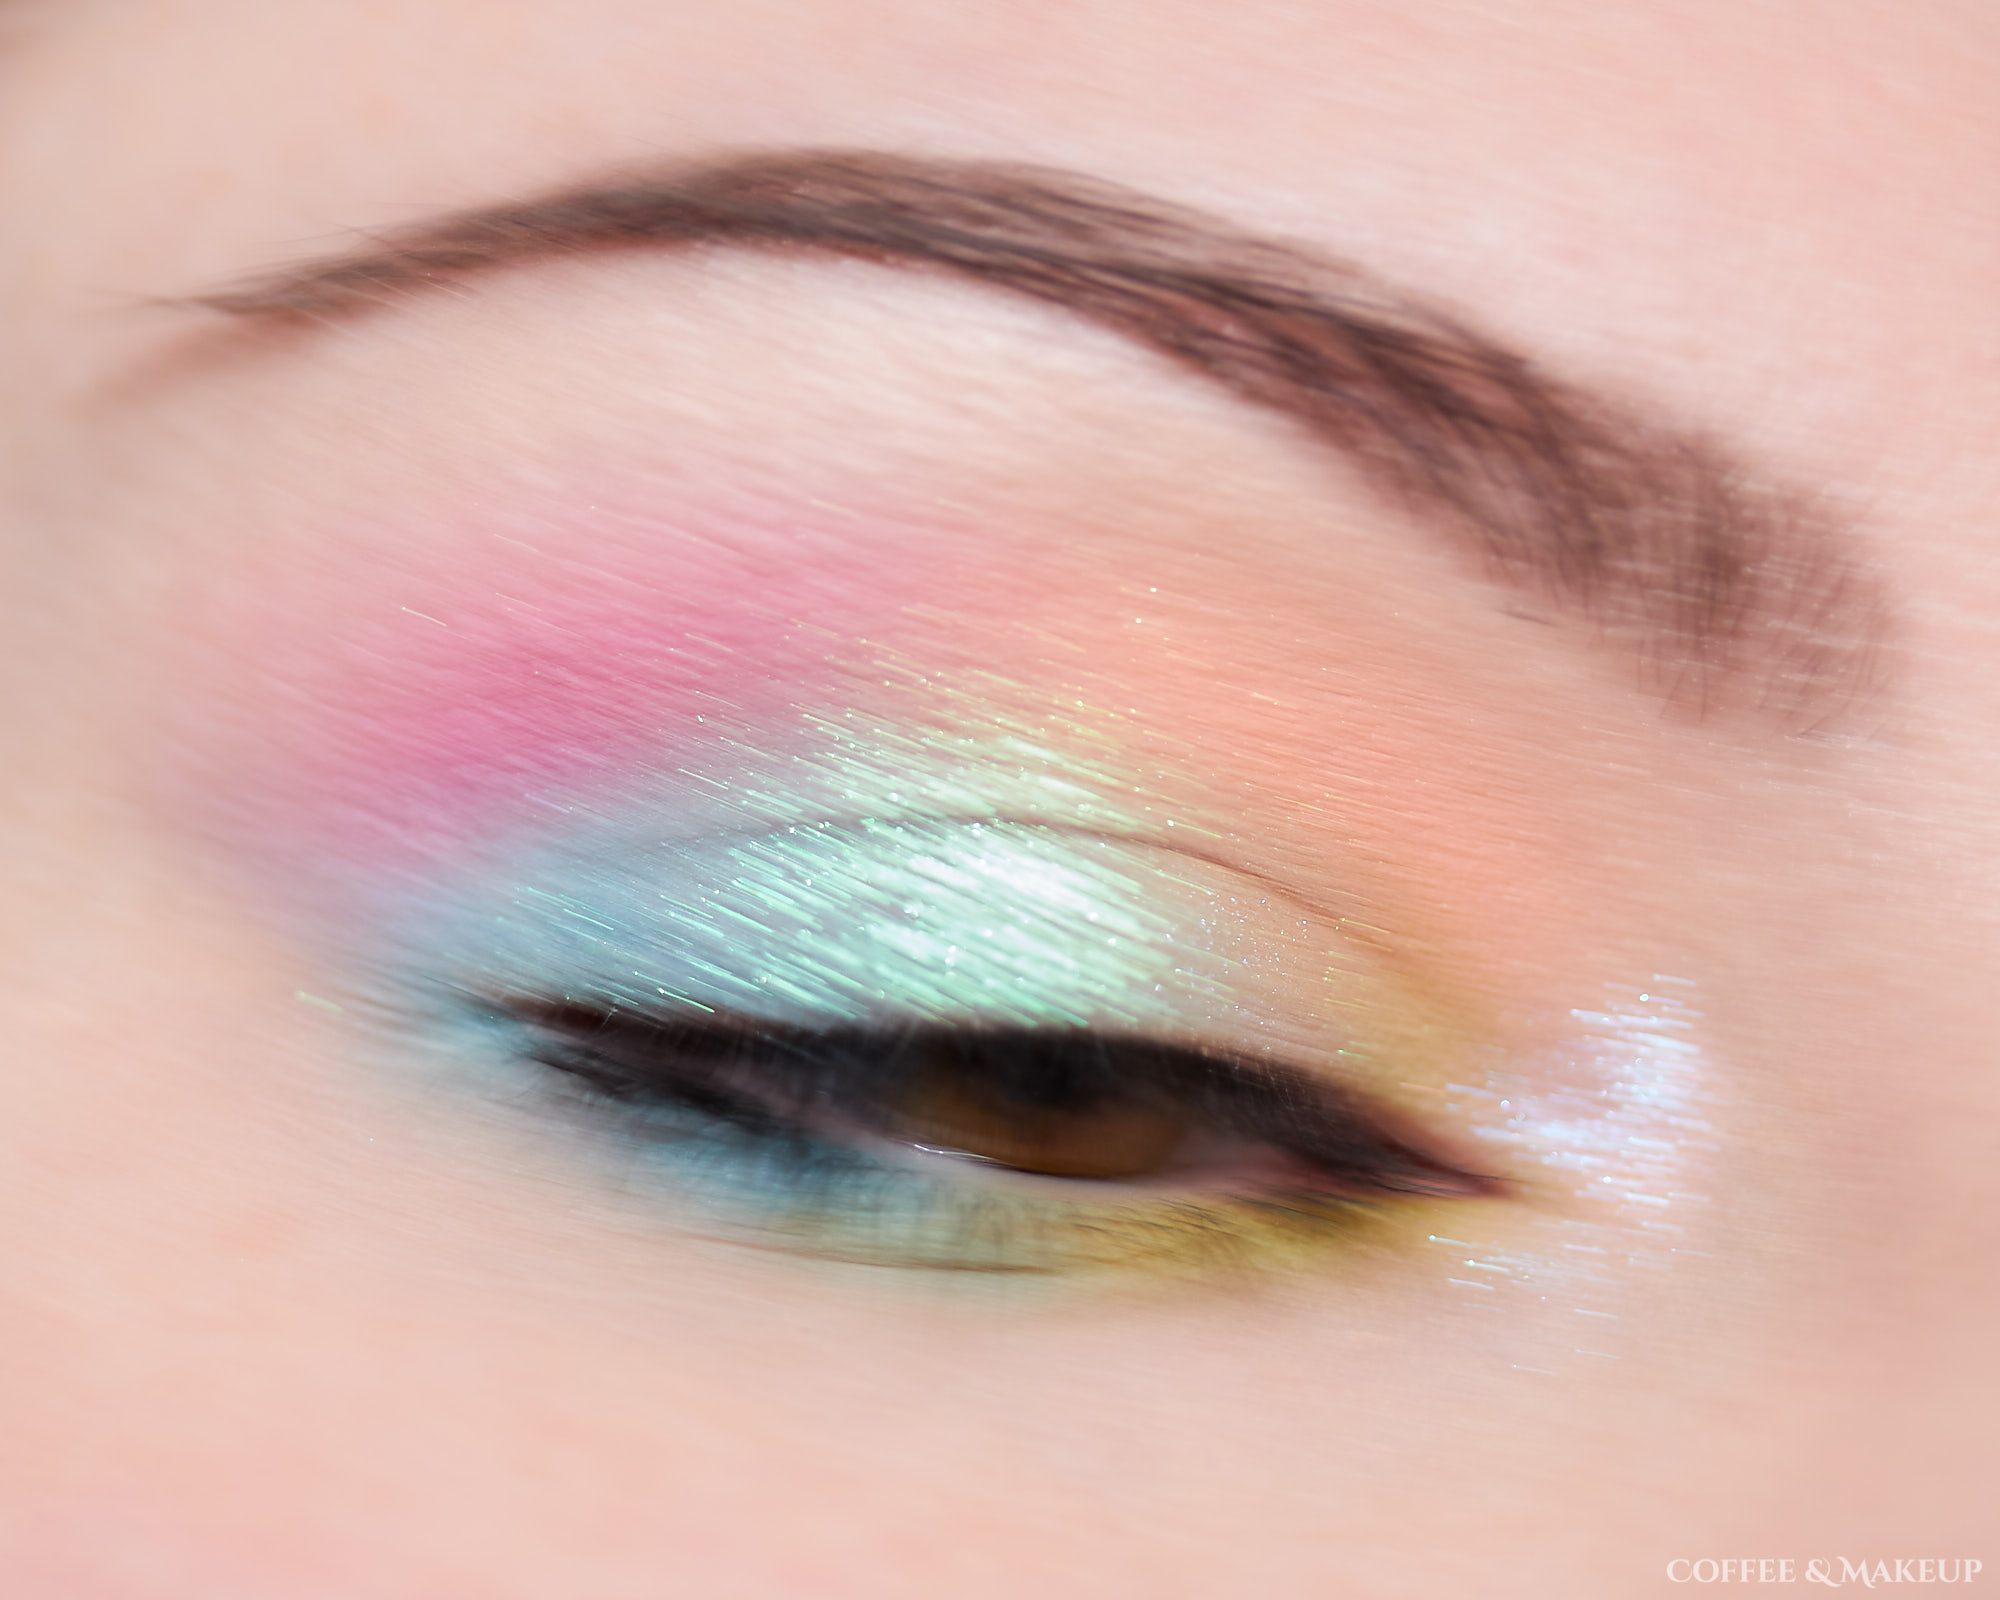 Makeup Geek Soft Focus Colors and Devinah Xploders Look #1